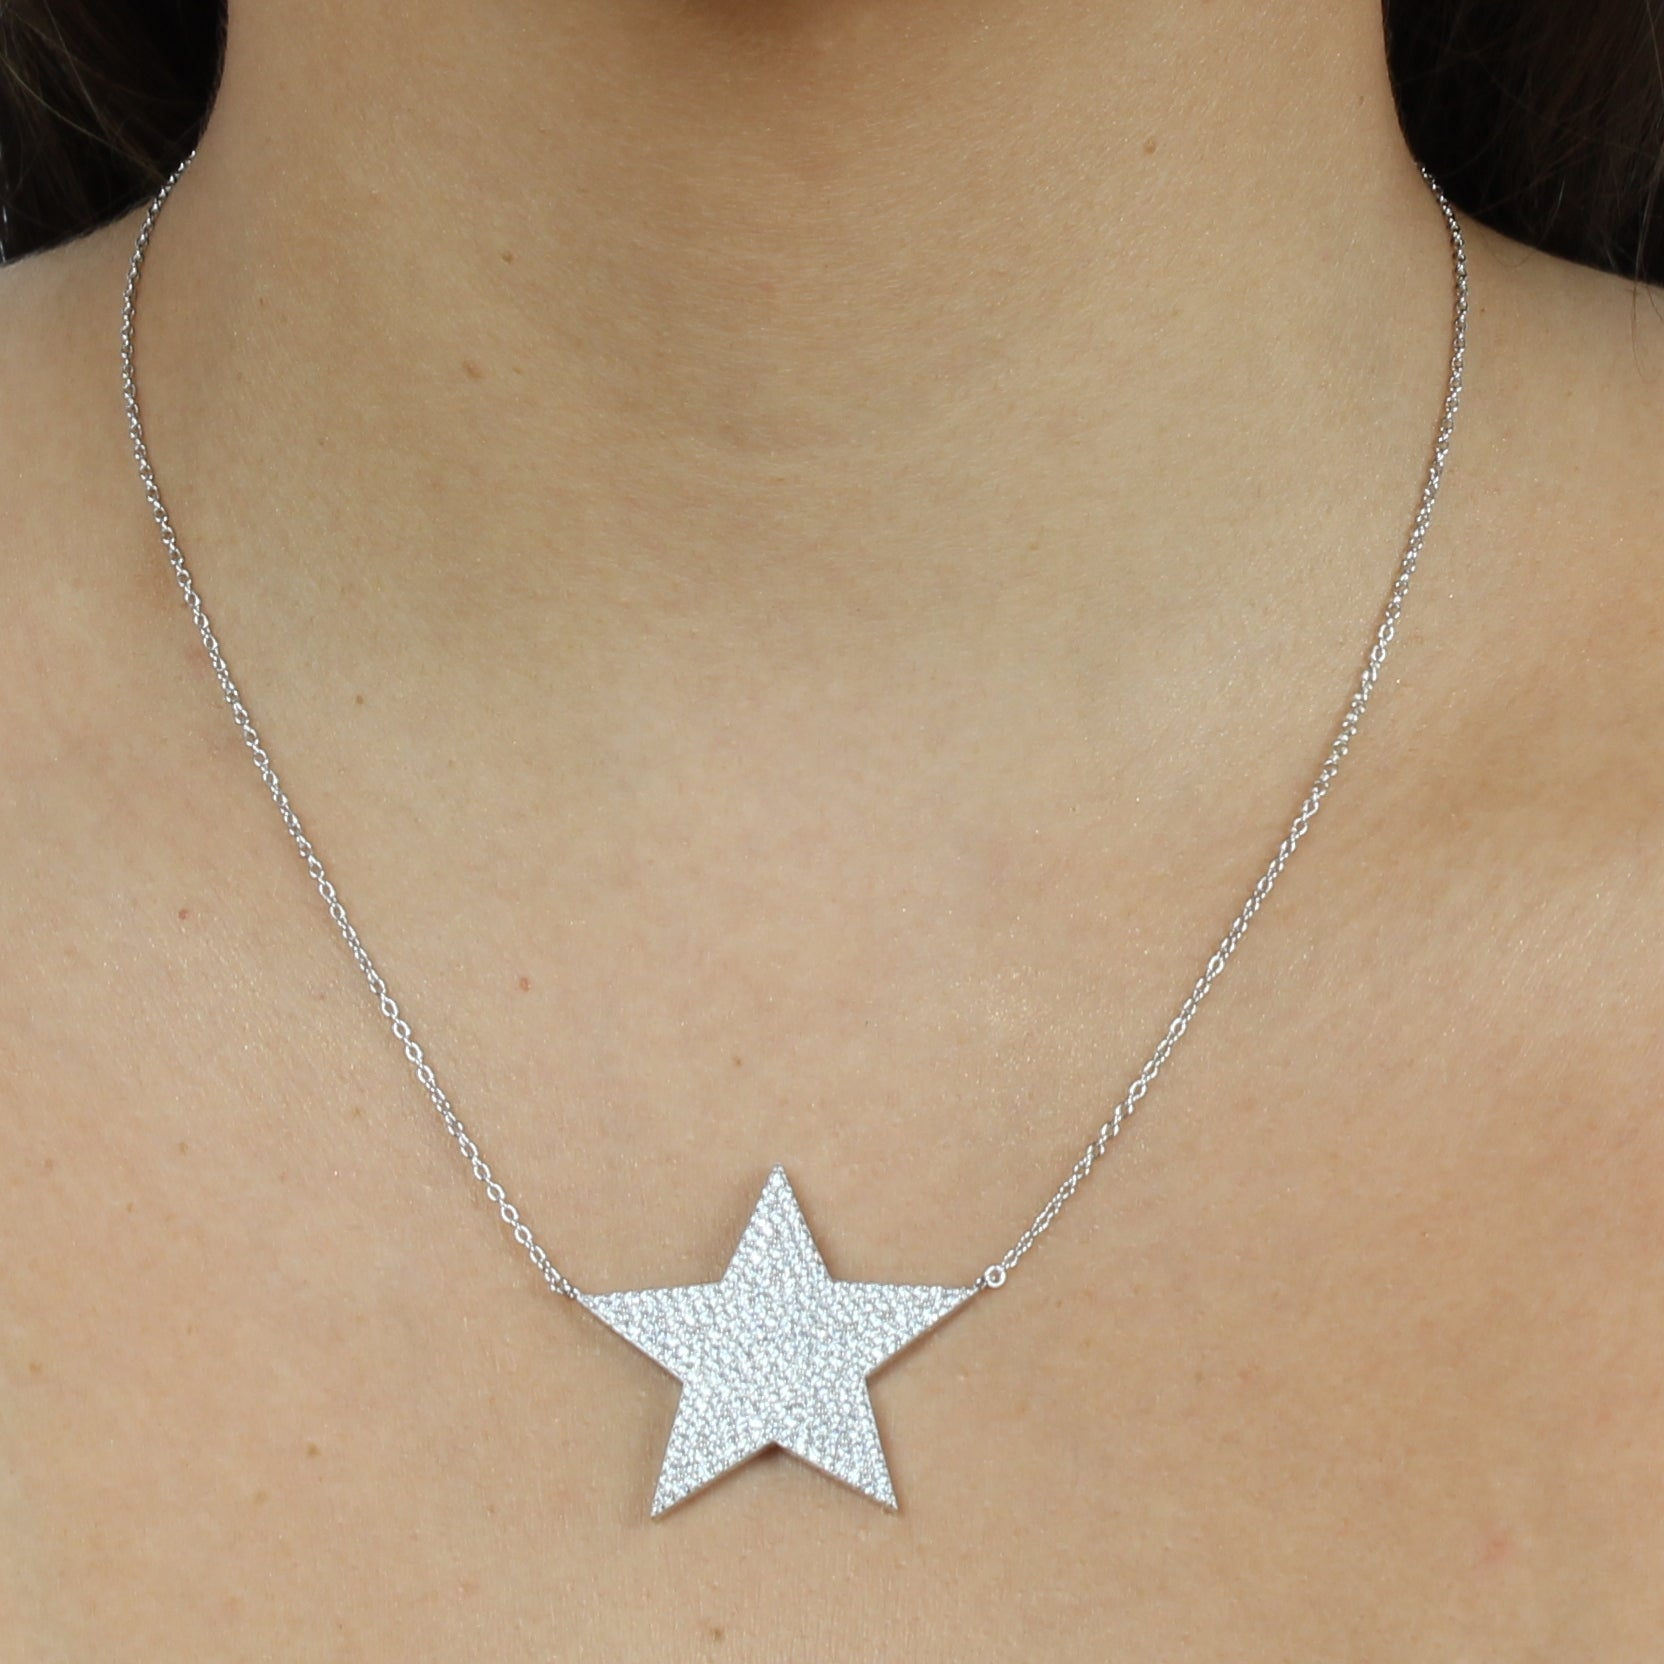 JUMBO PAVE STAR NECKLACE